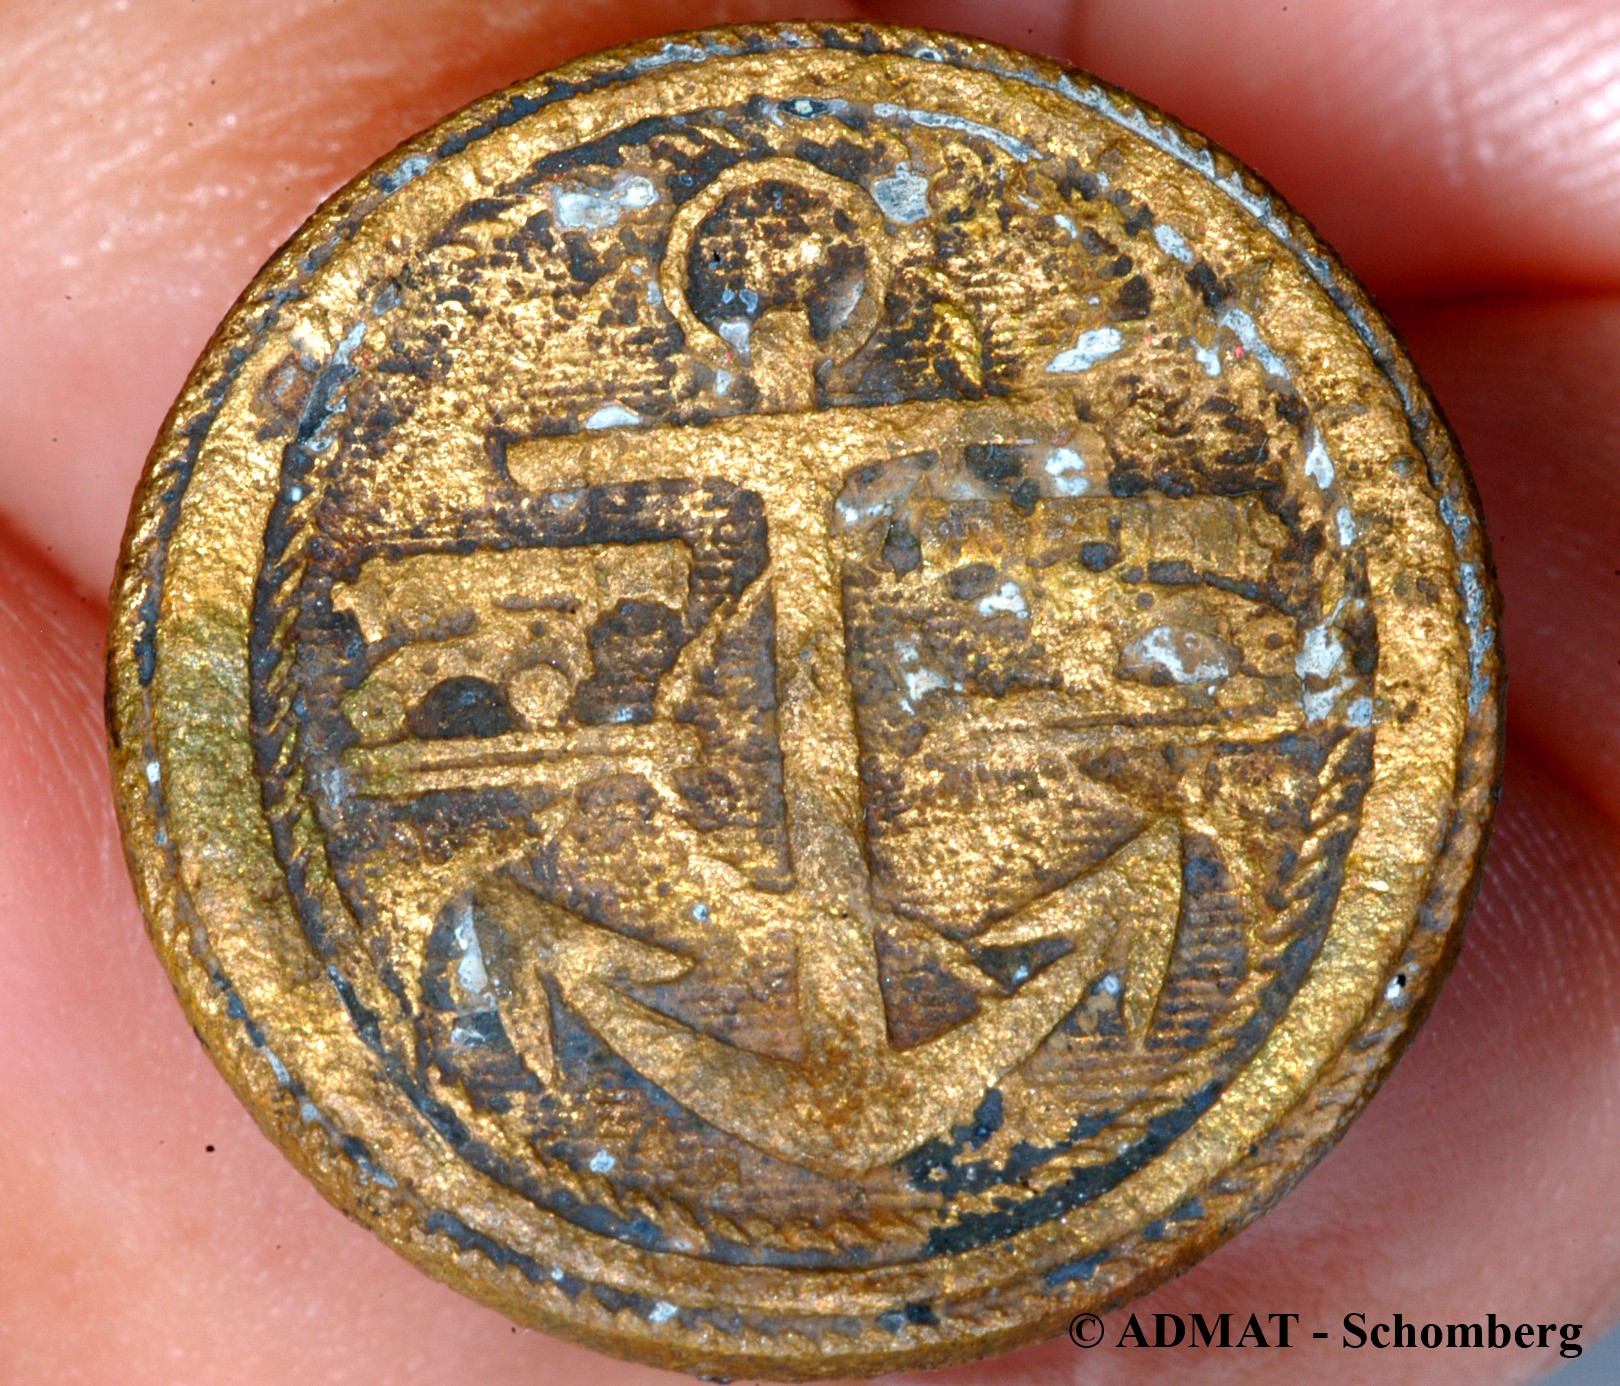 One of two gilt covered copper alloy English gunnery officers buttons found in the hold of the wreck